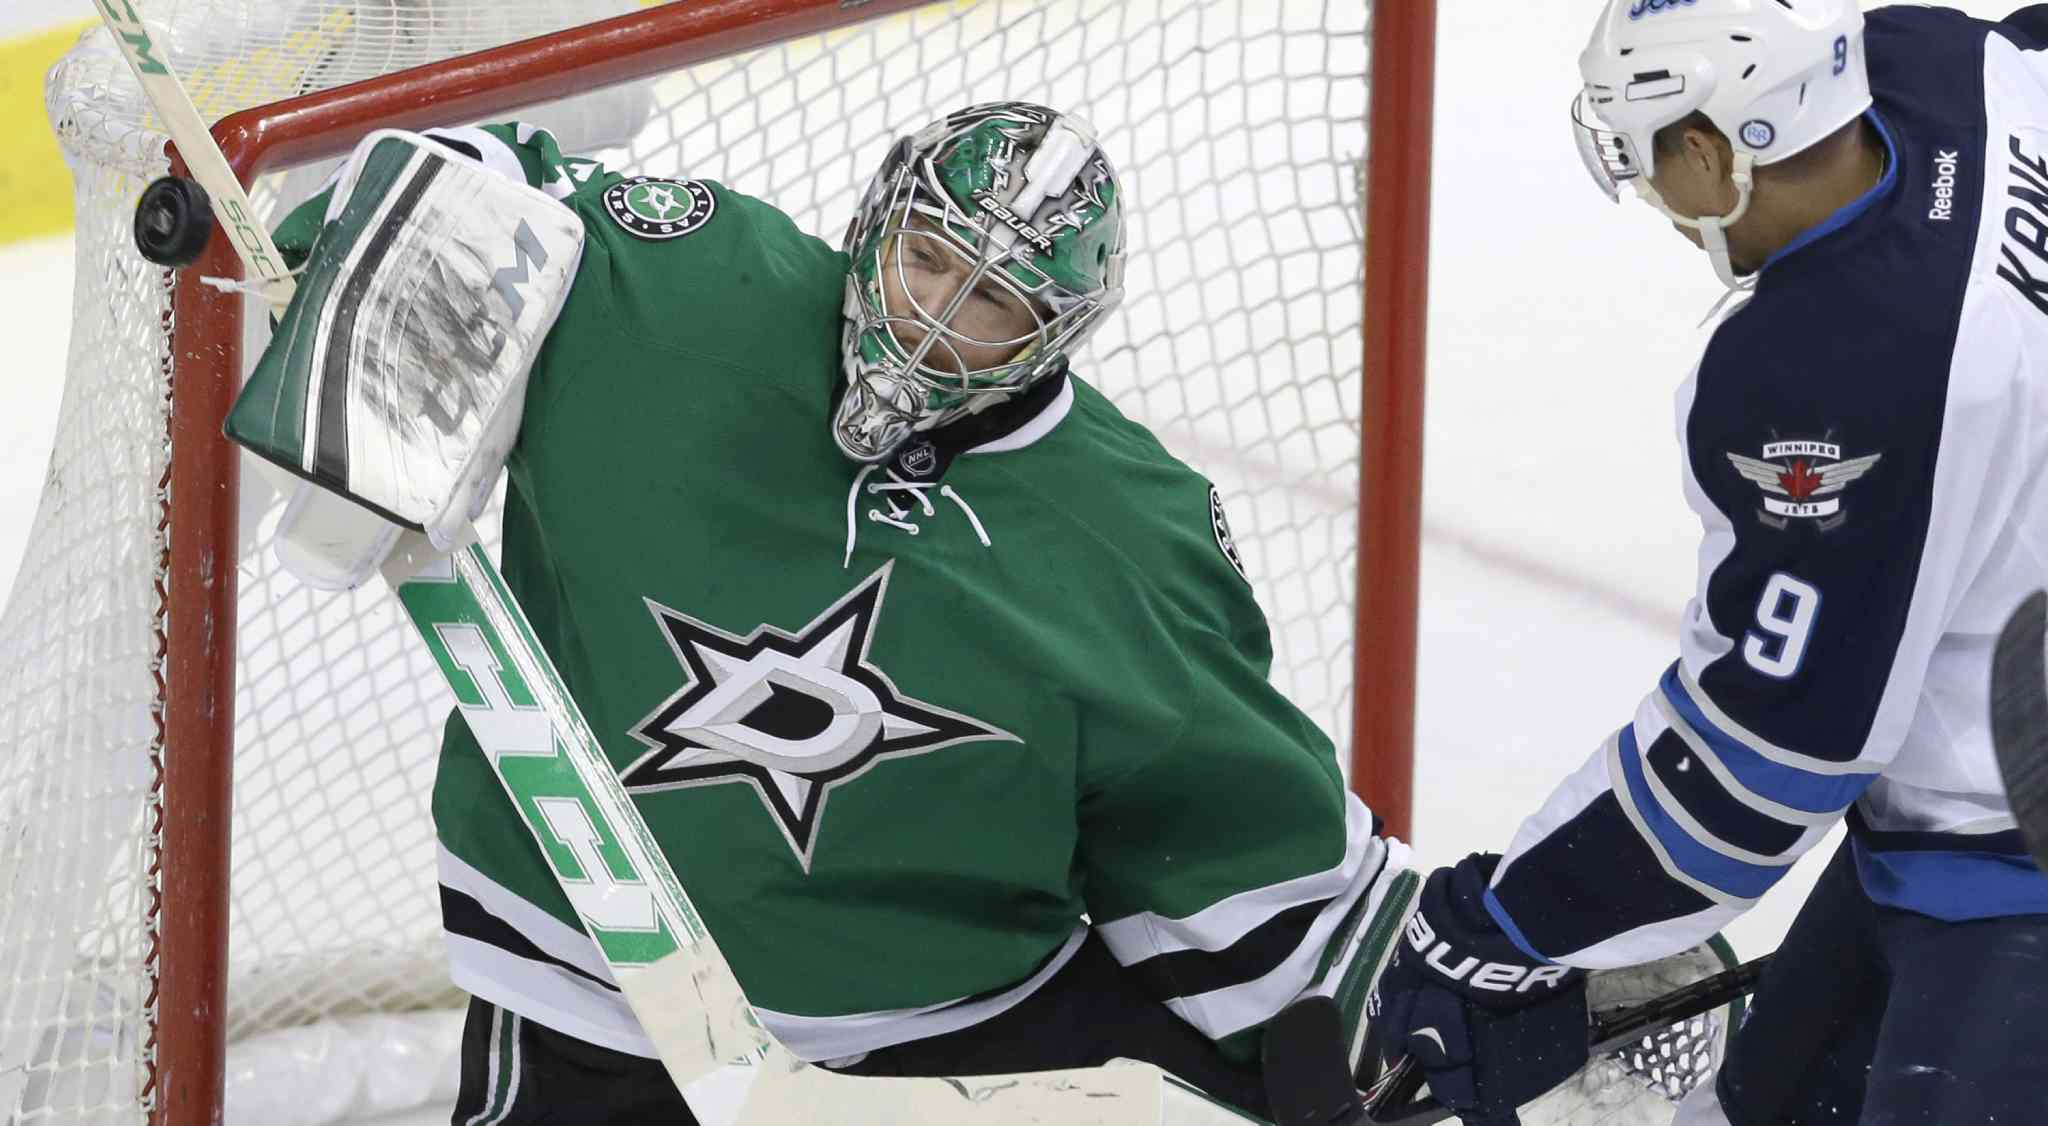 Dallas Stars goalie Kari Lehtonen blocks a shot from Winnipeg Jets left-winger Evander Kane (9) during the second period of an NHL game at American Airlines Arena in Dallas Monday. The Jets lost 2-1.